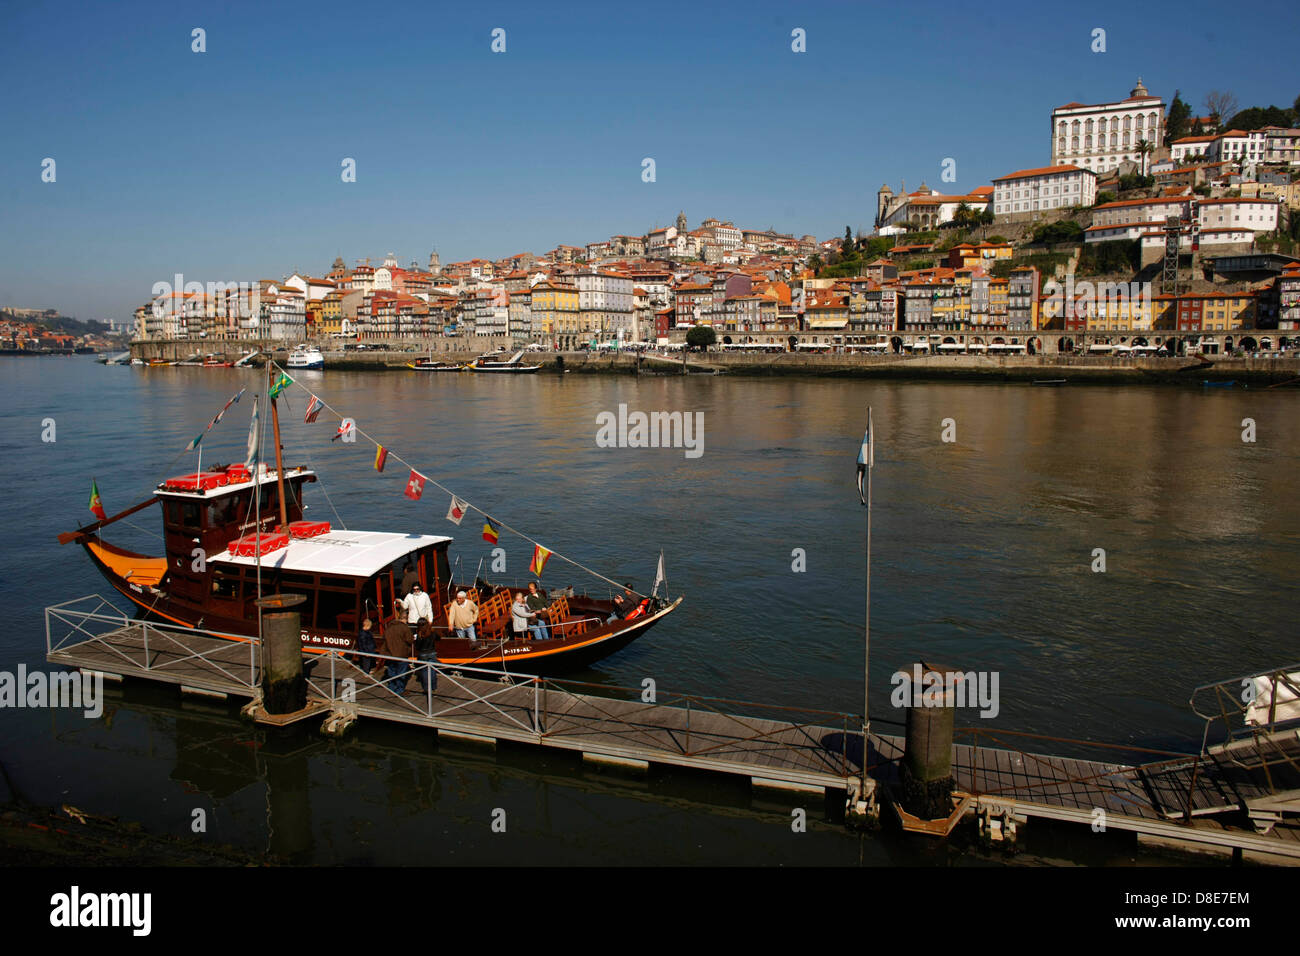 Port wine sip on River Douro, Porto, Portugal - Stock Image